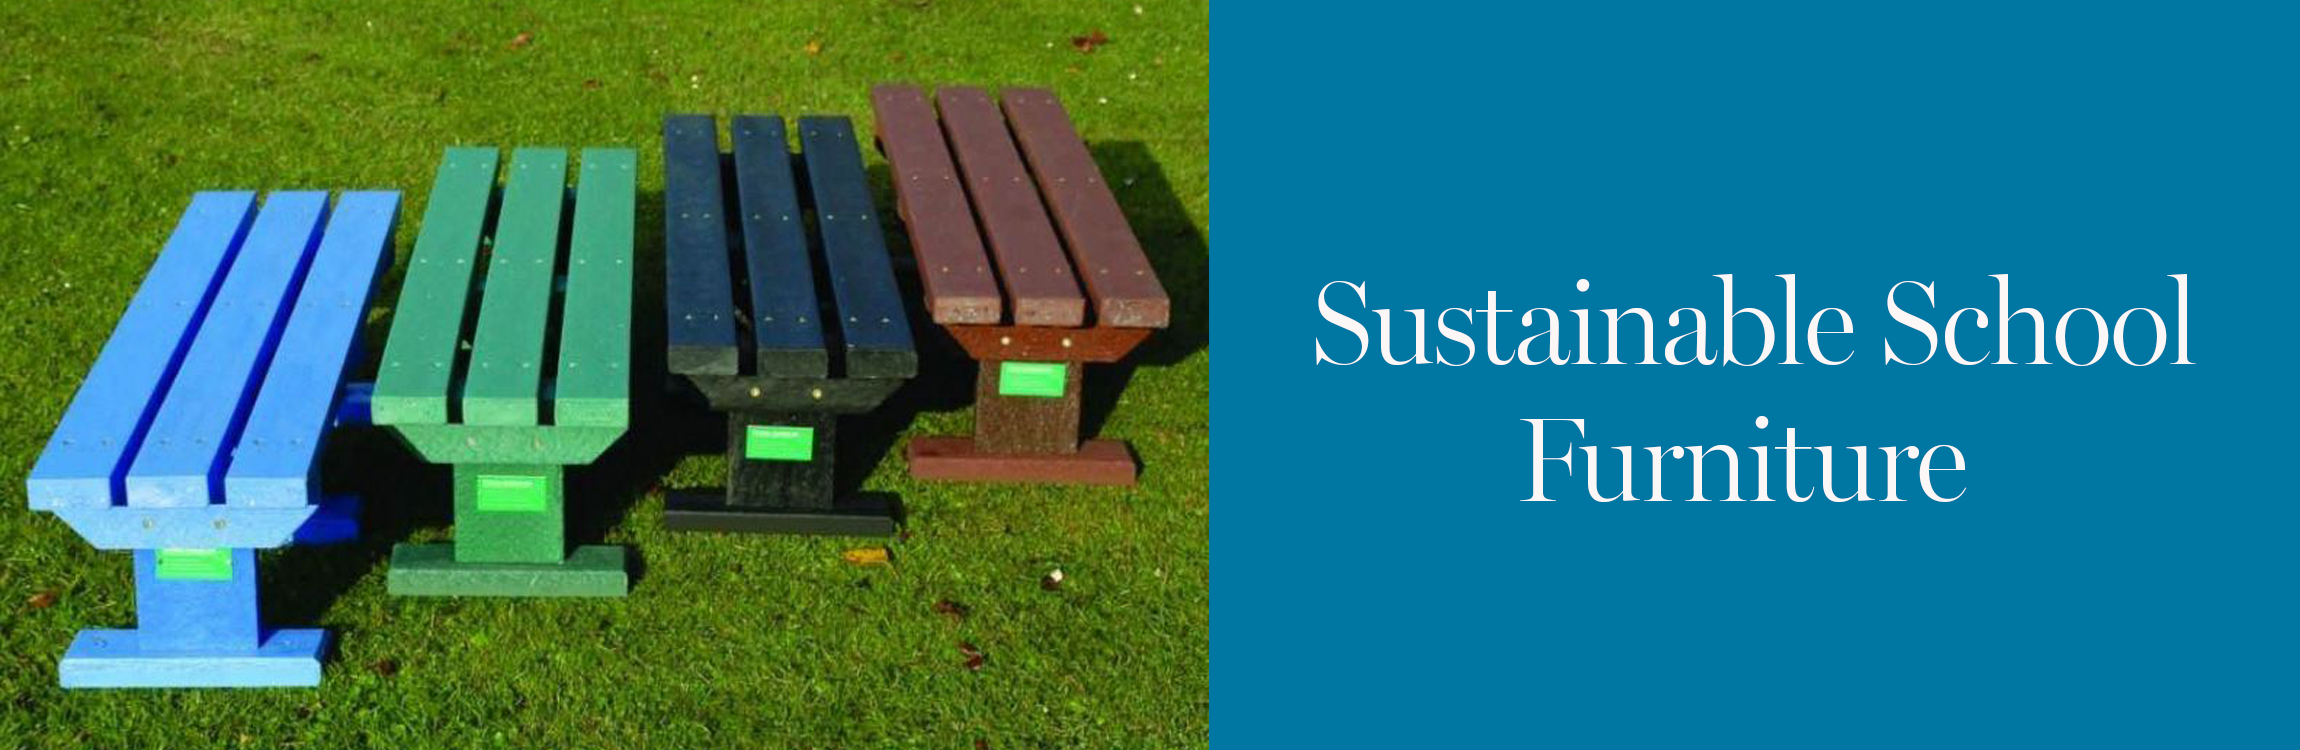 Sustainable School Furniture